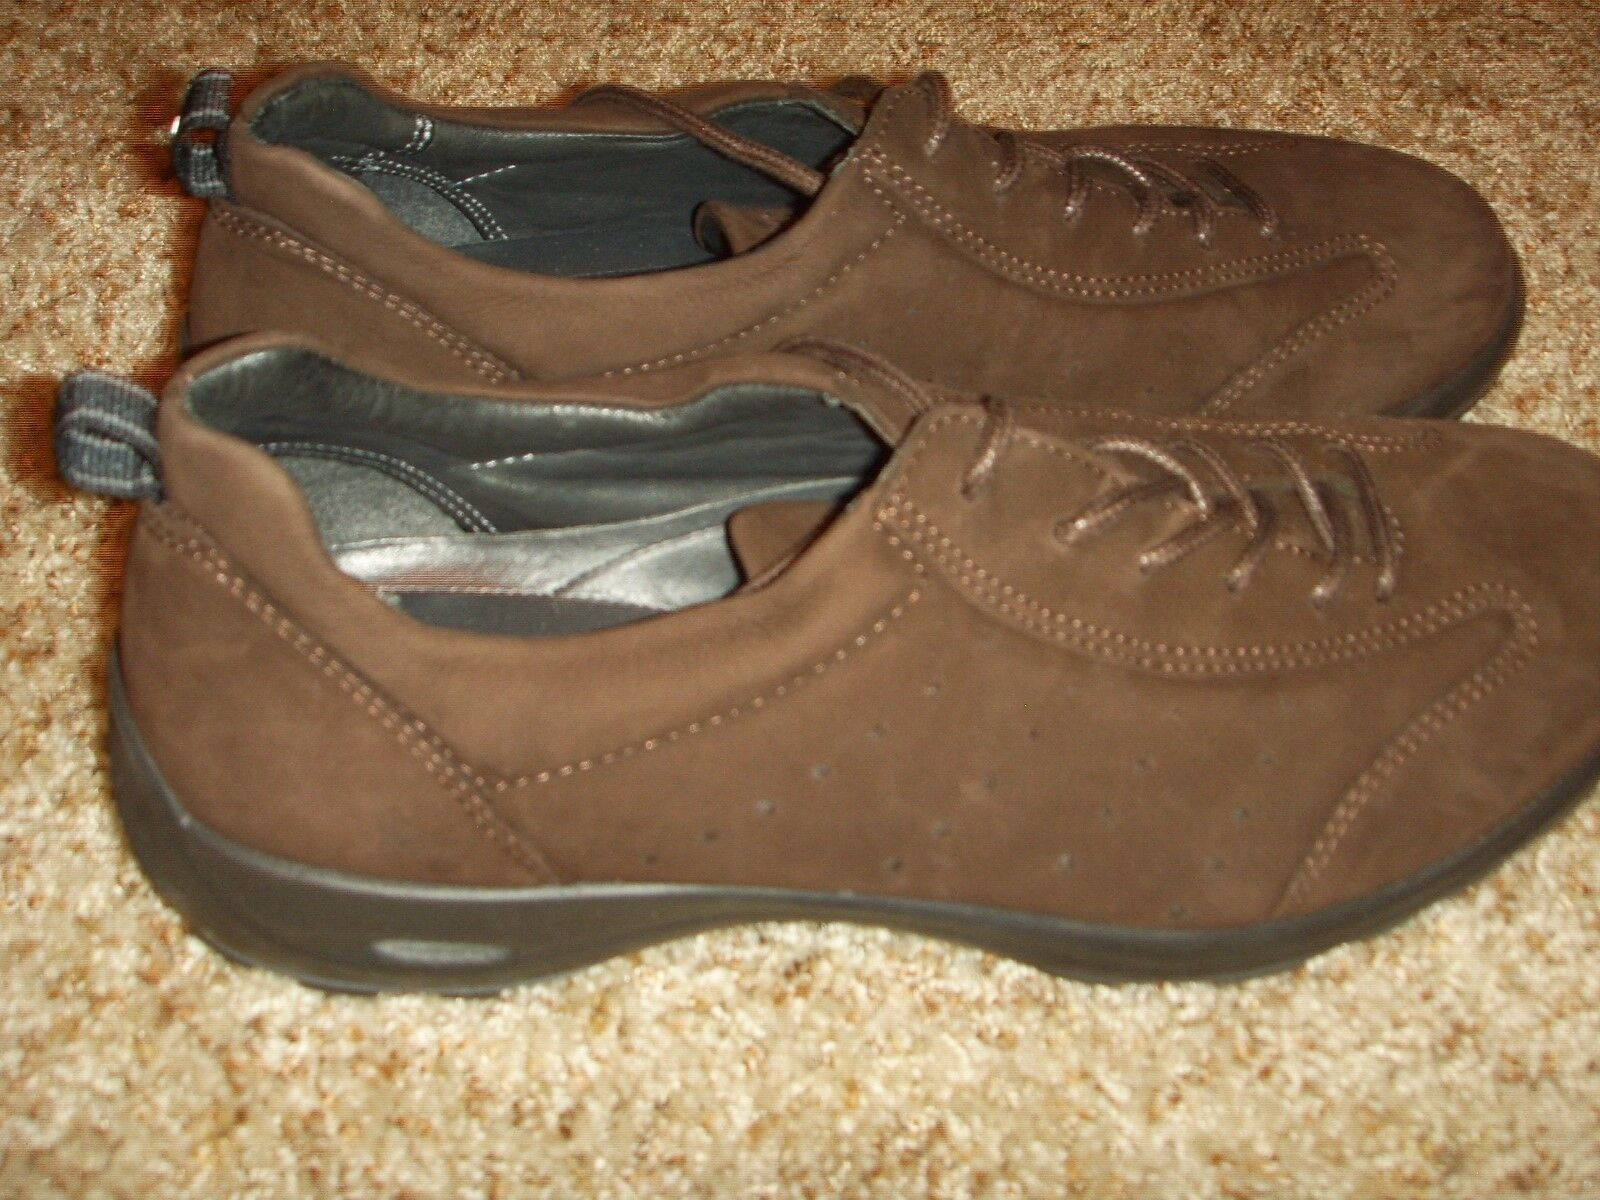 ECCO Dark Braun Suede vegetable tanned Oxford Damenschuhe Größe 40